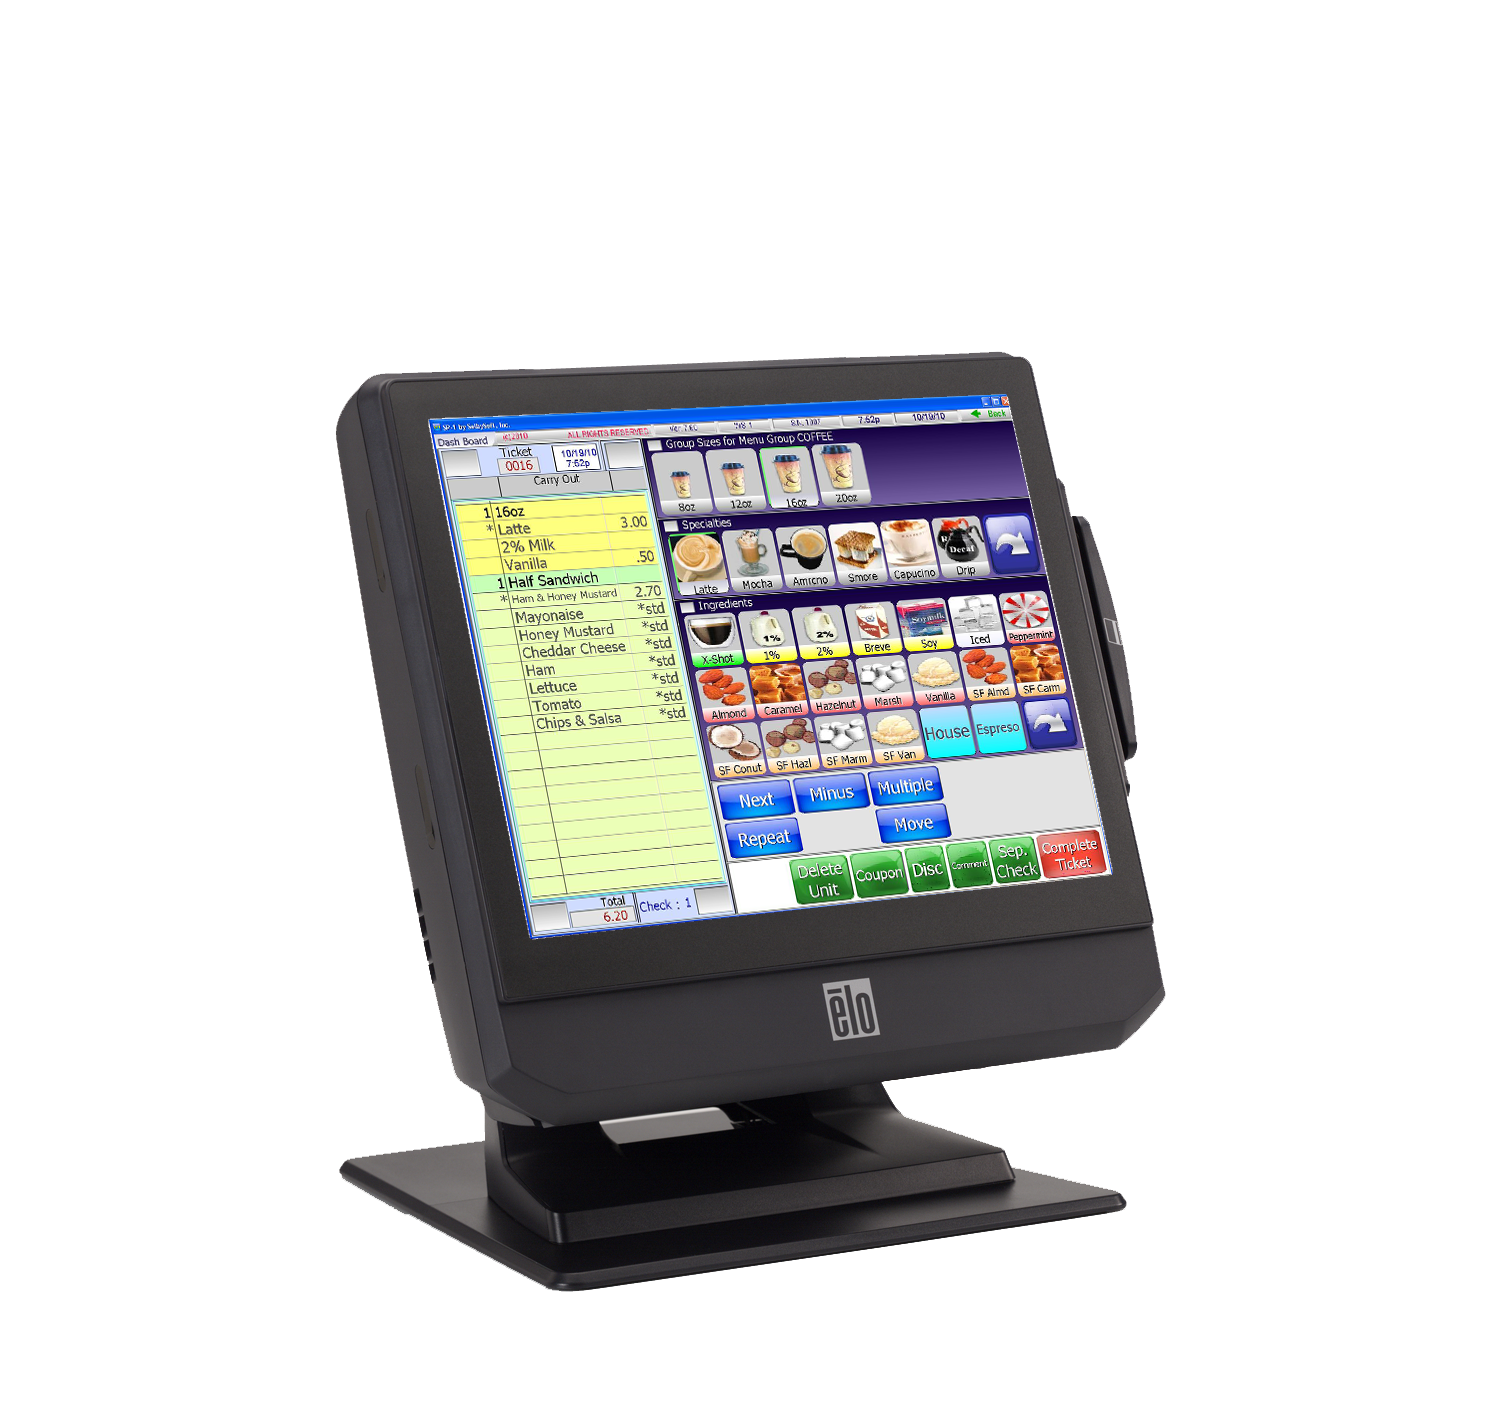 Reporting | SP-1 by SelbySoft POS System - Part 2